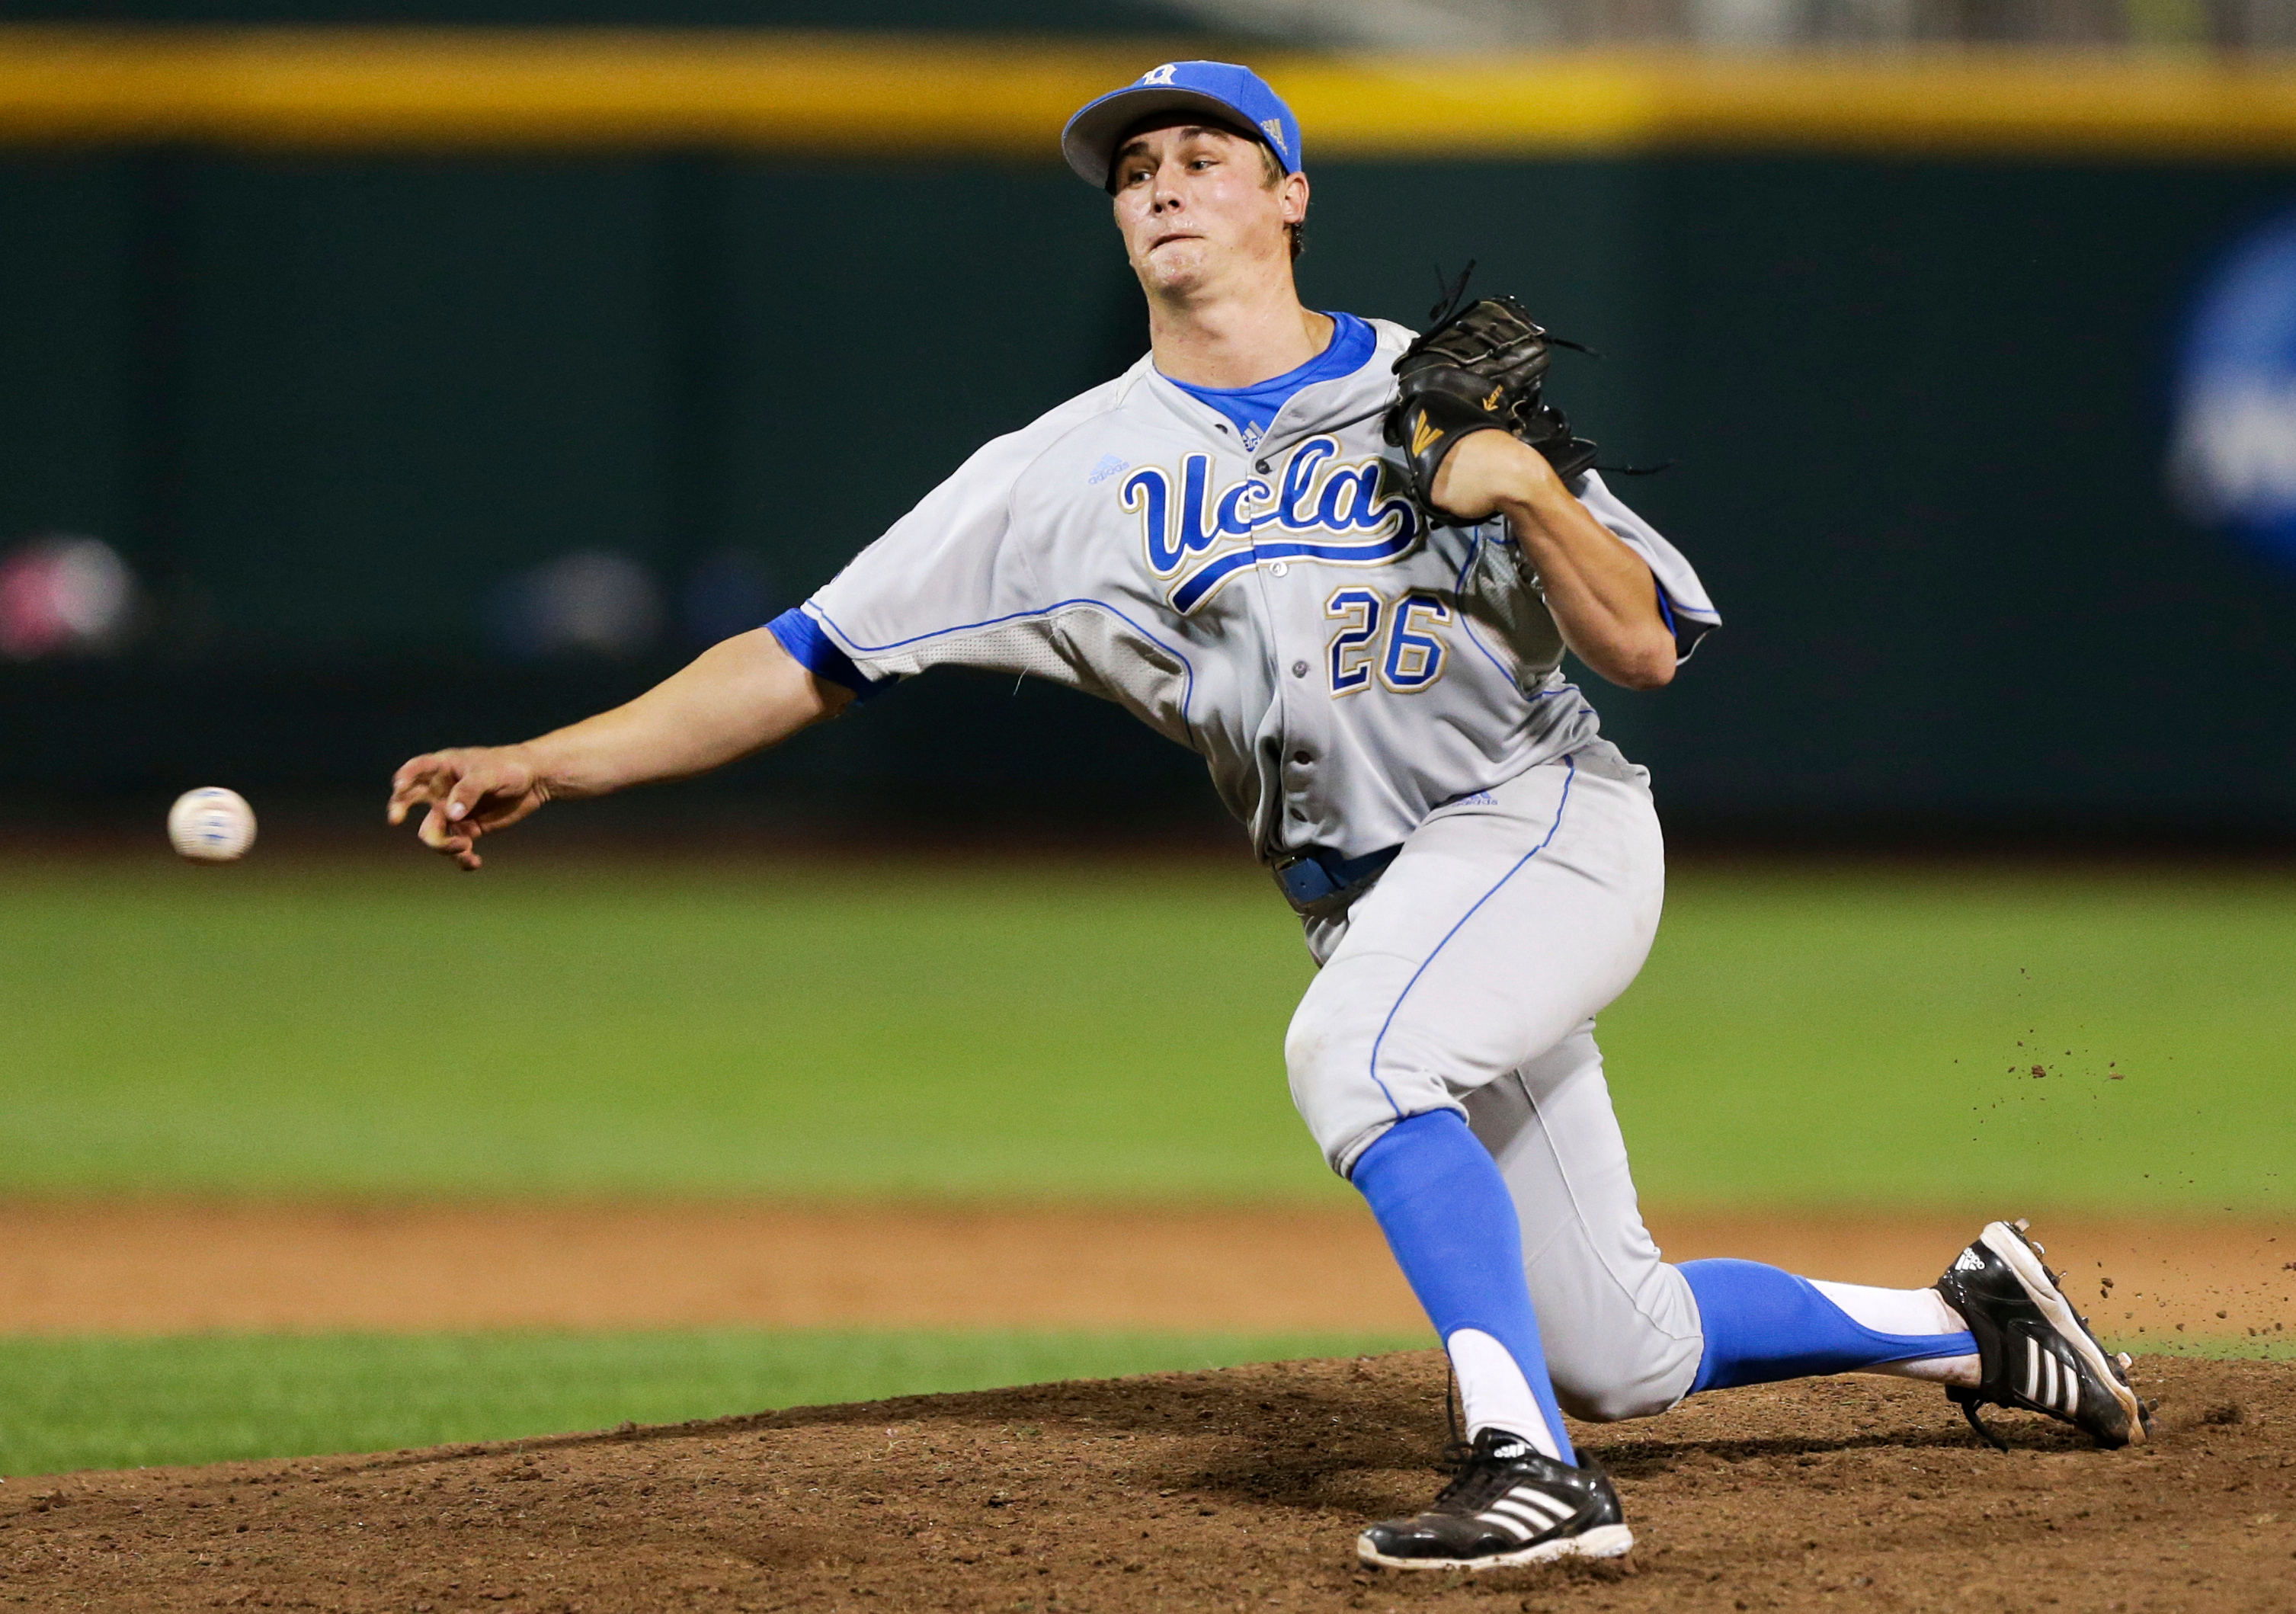 UCLA closer David Berg delivers against Mississippi State in the ninth inning of Game 1 of the College World Series on June 24, 2013. Berg earned his 24th save, setting a new NCAA single-season record. (Nati Harnik/AP)